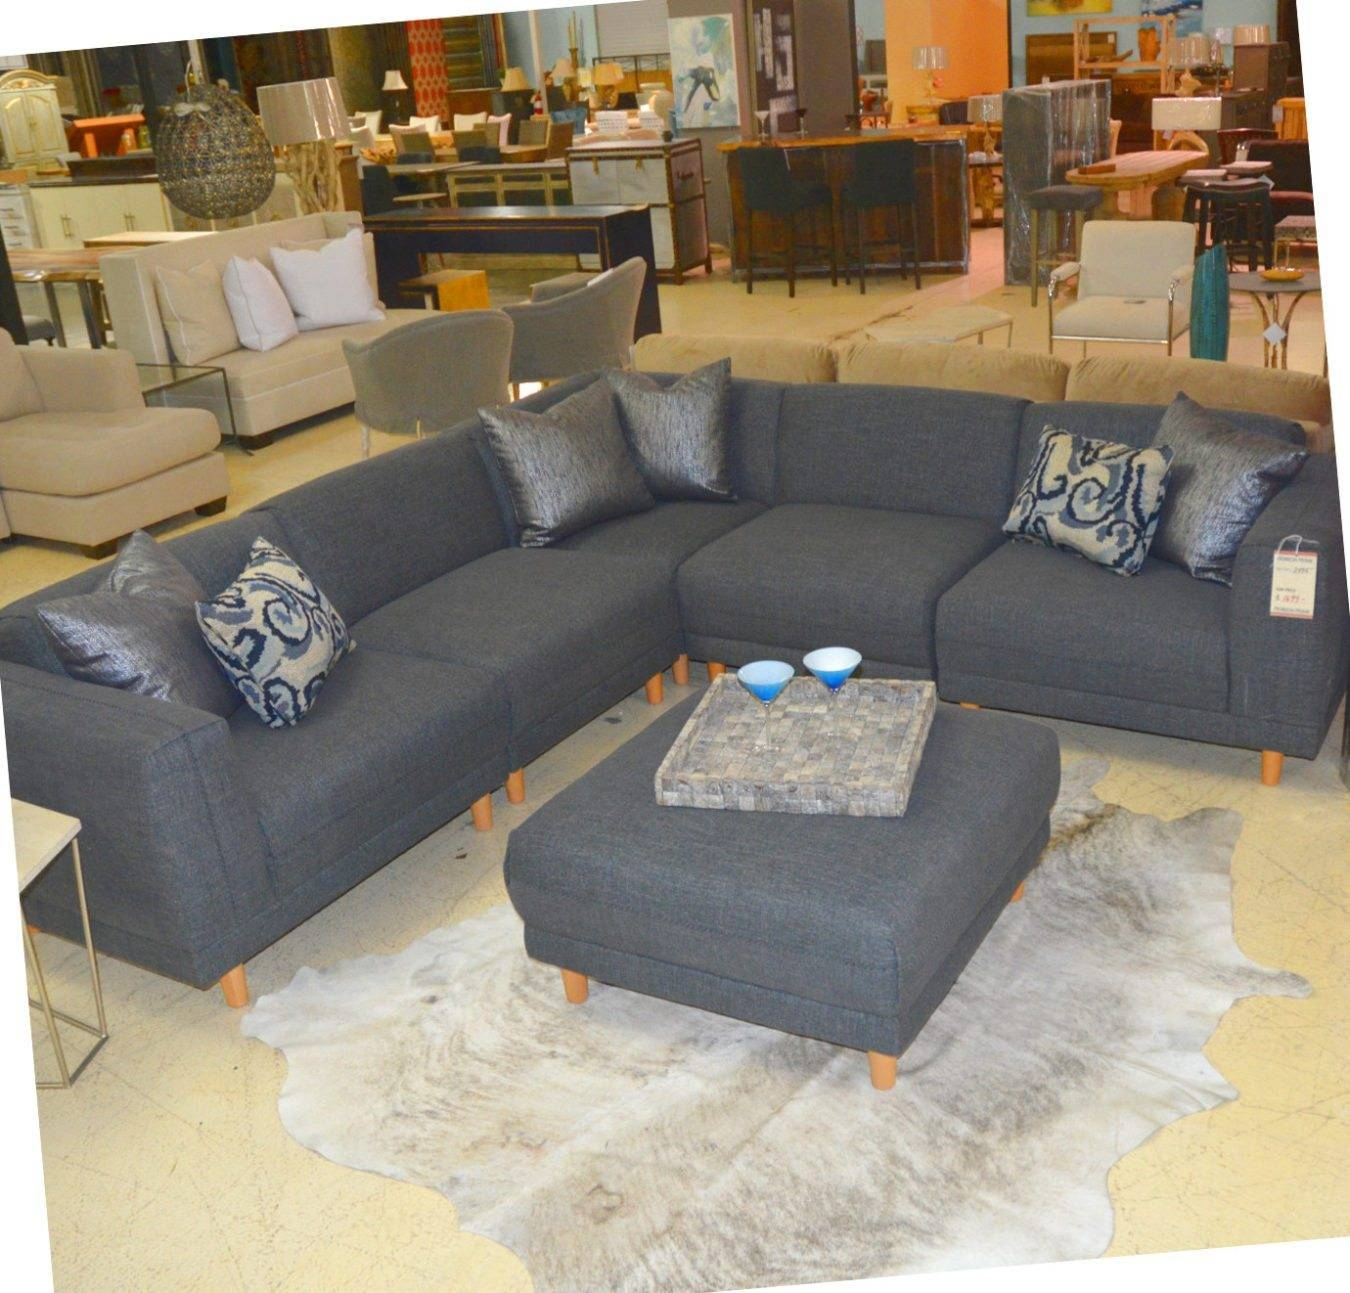 Luxury Sectional Sofas St Louis 99 With Additional Braxton regarding Braxton Sectional Sofas (Image 11 of 15)